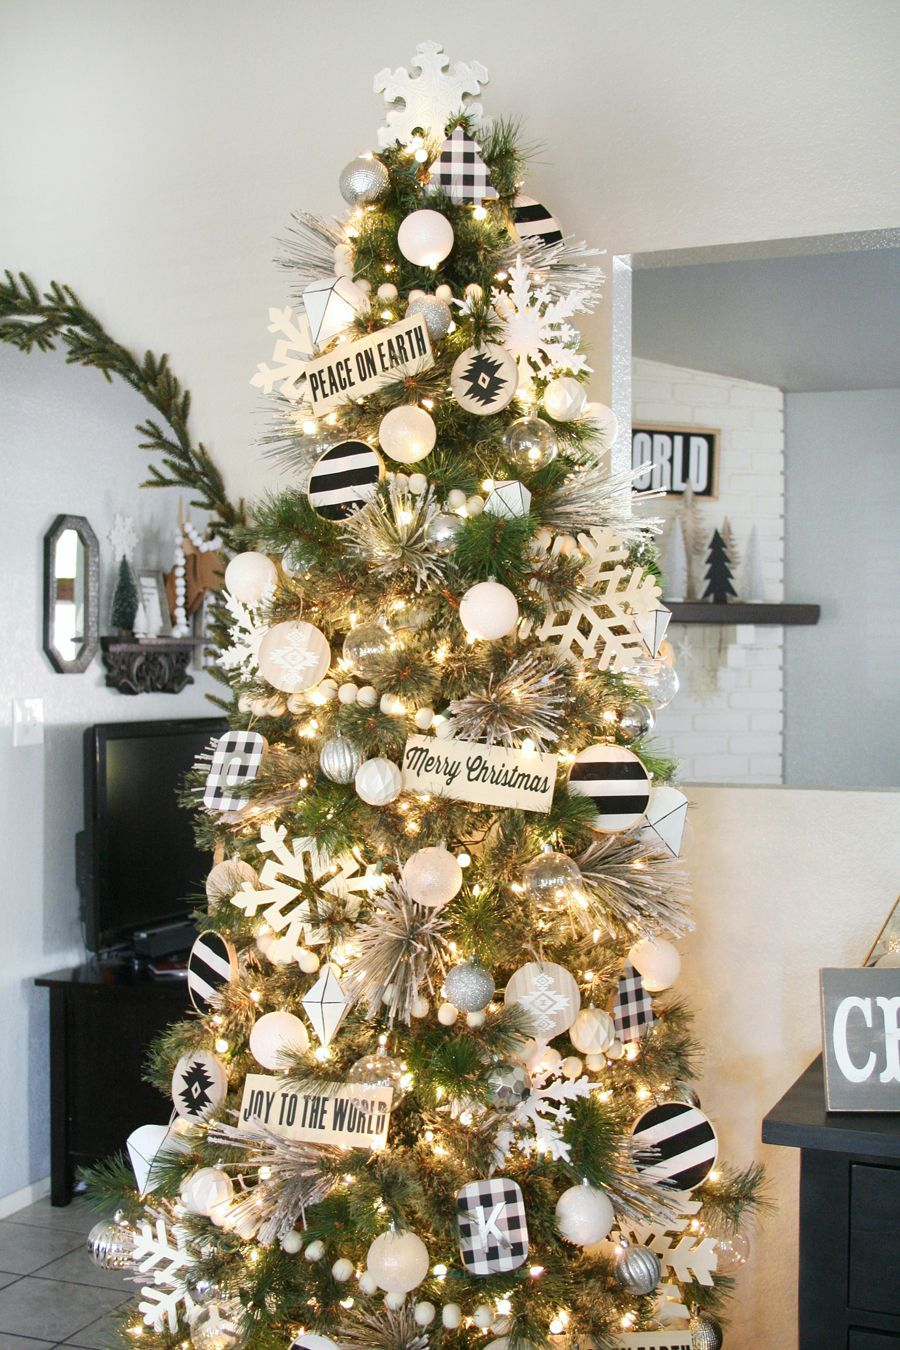 89 Best Christmas Tree Decorations to Try This Year #christmastreeideas